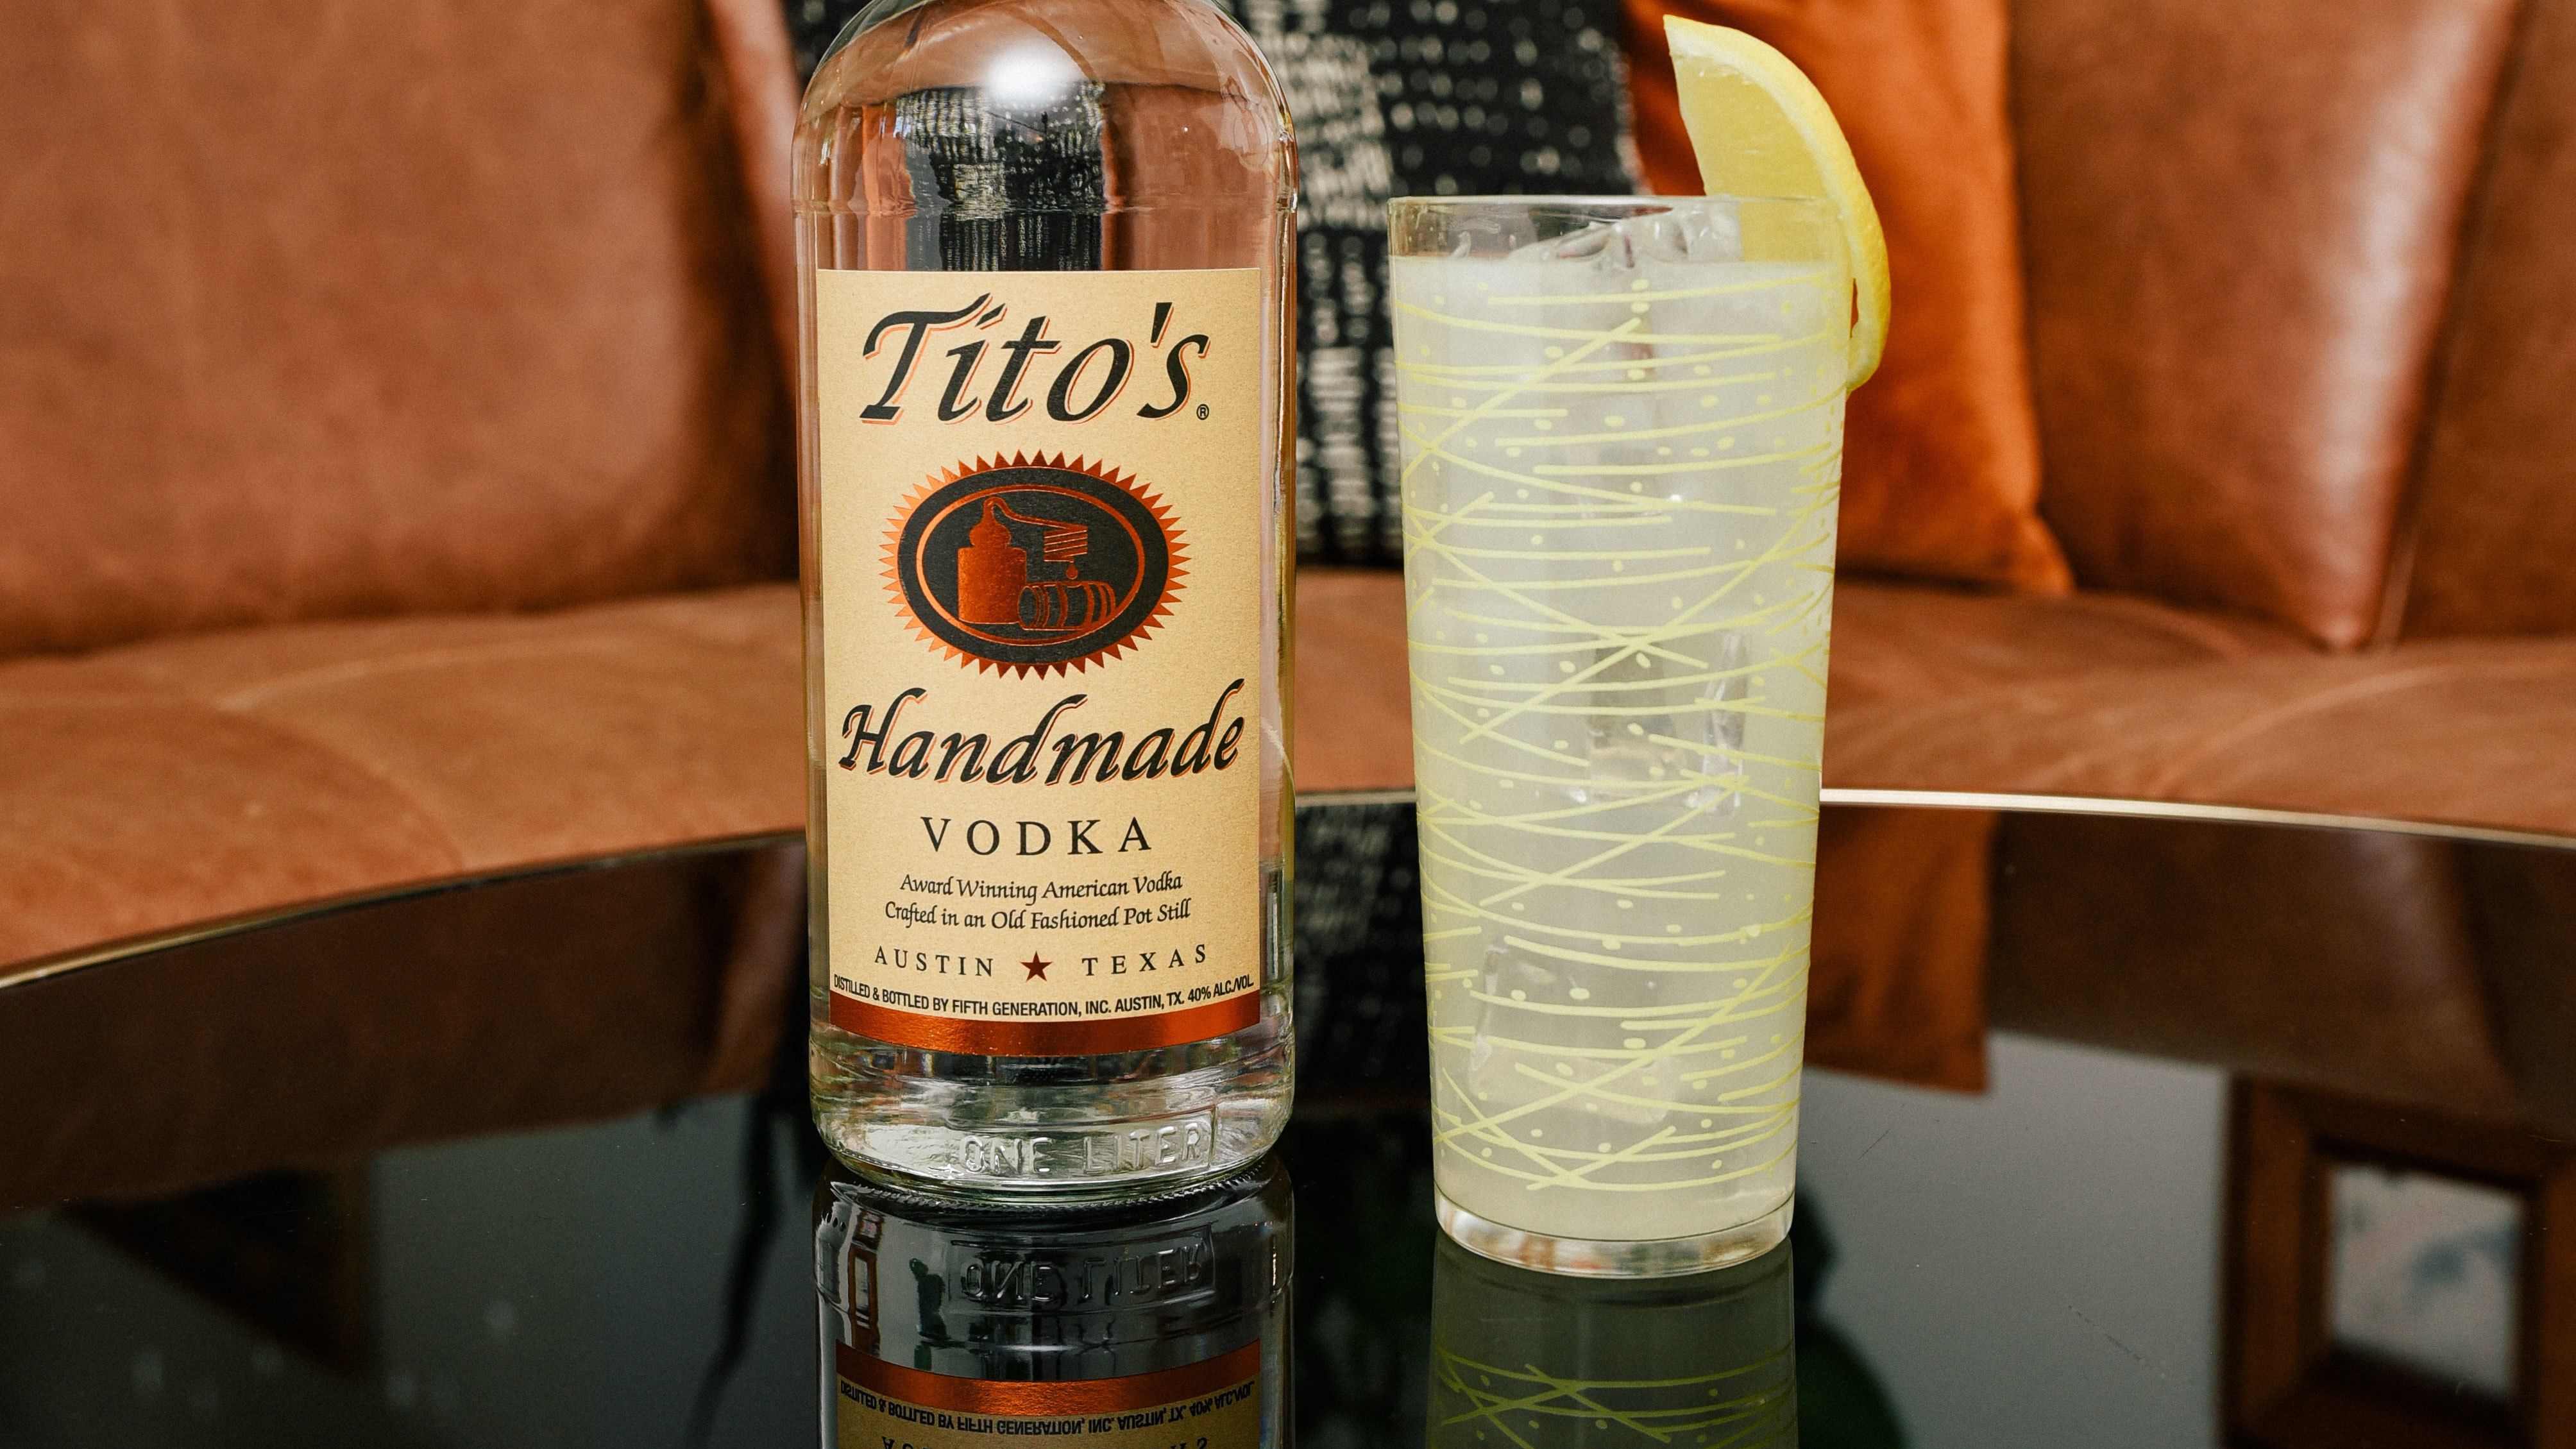 Tito's bottle next to Tito's Lemonade a tall class